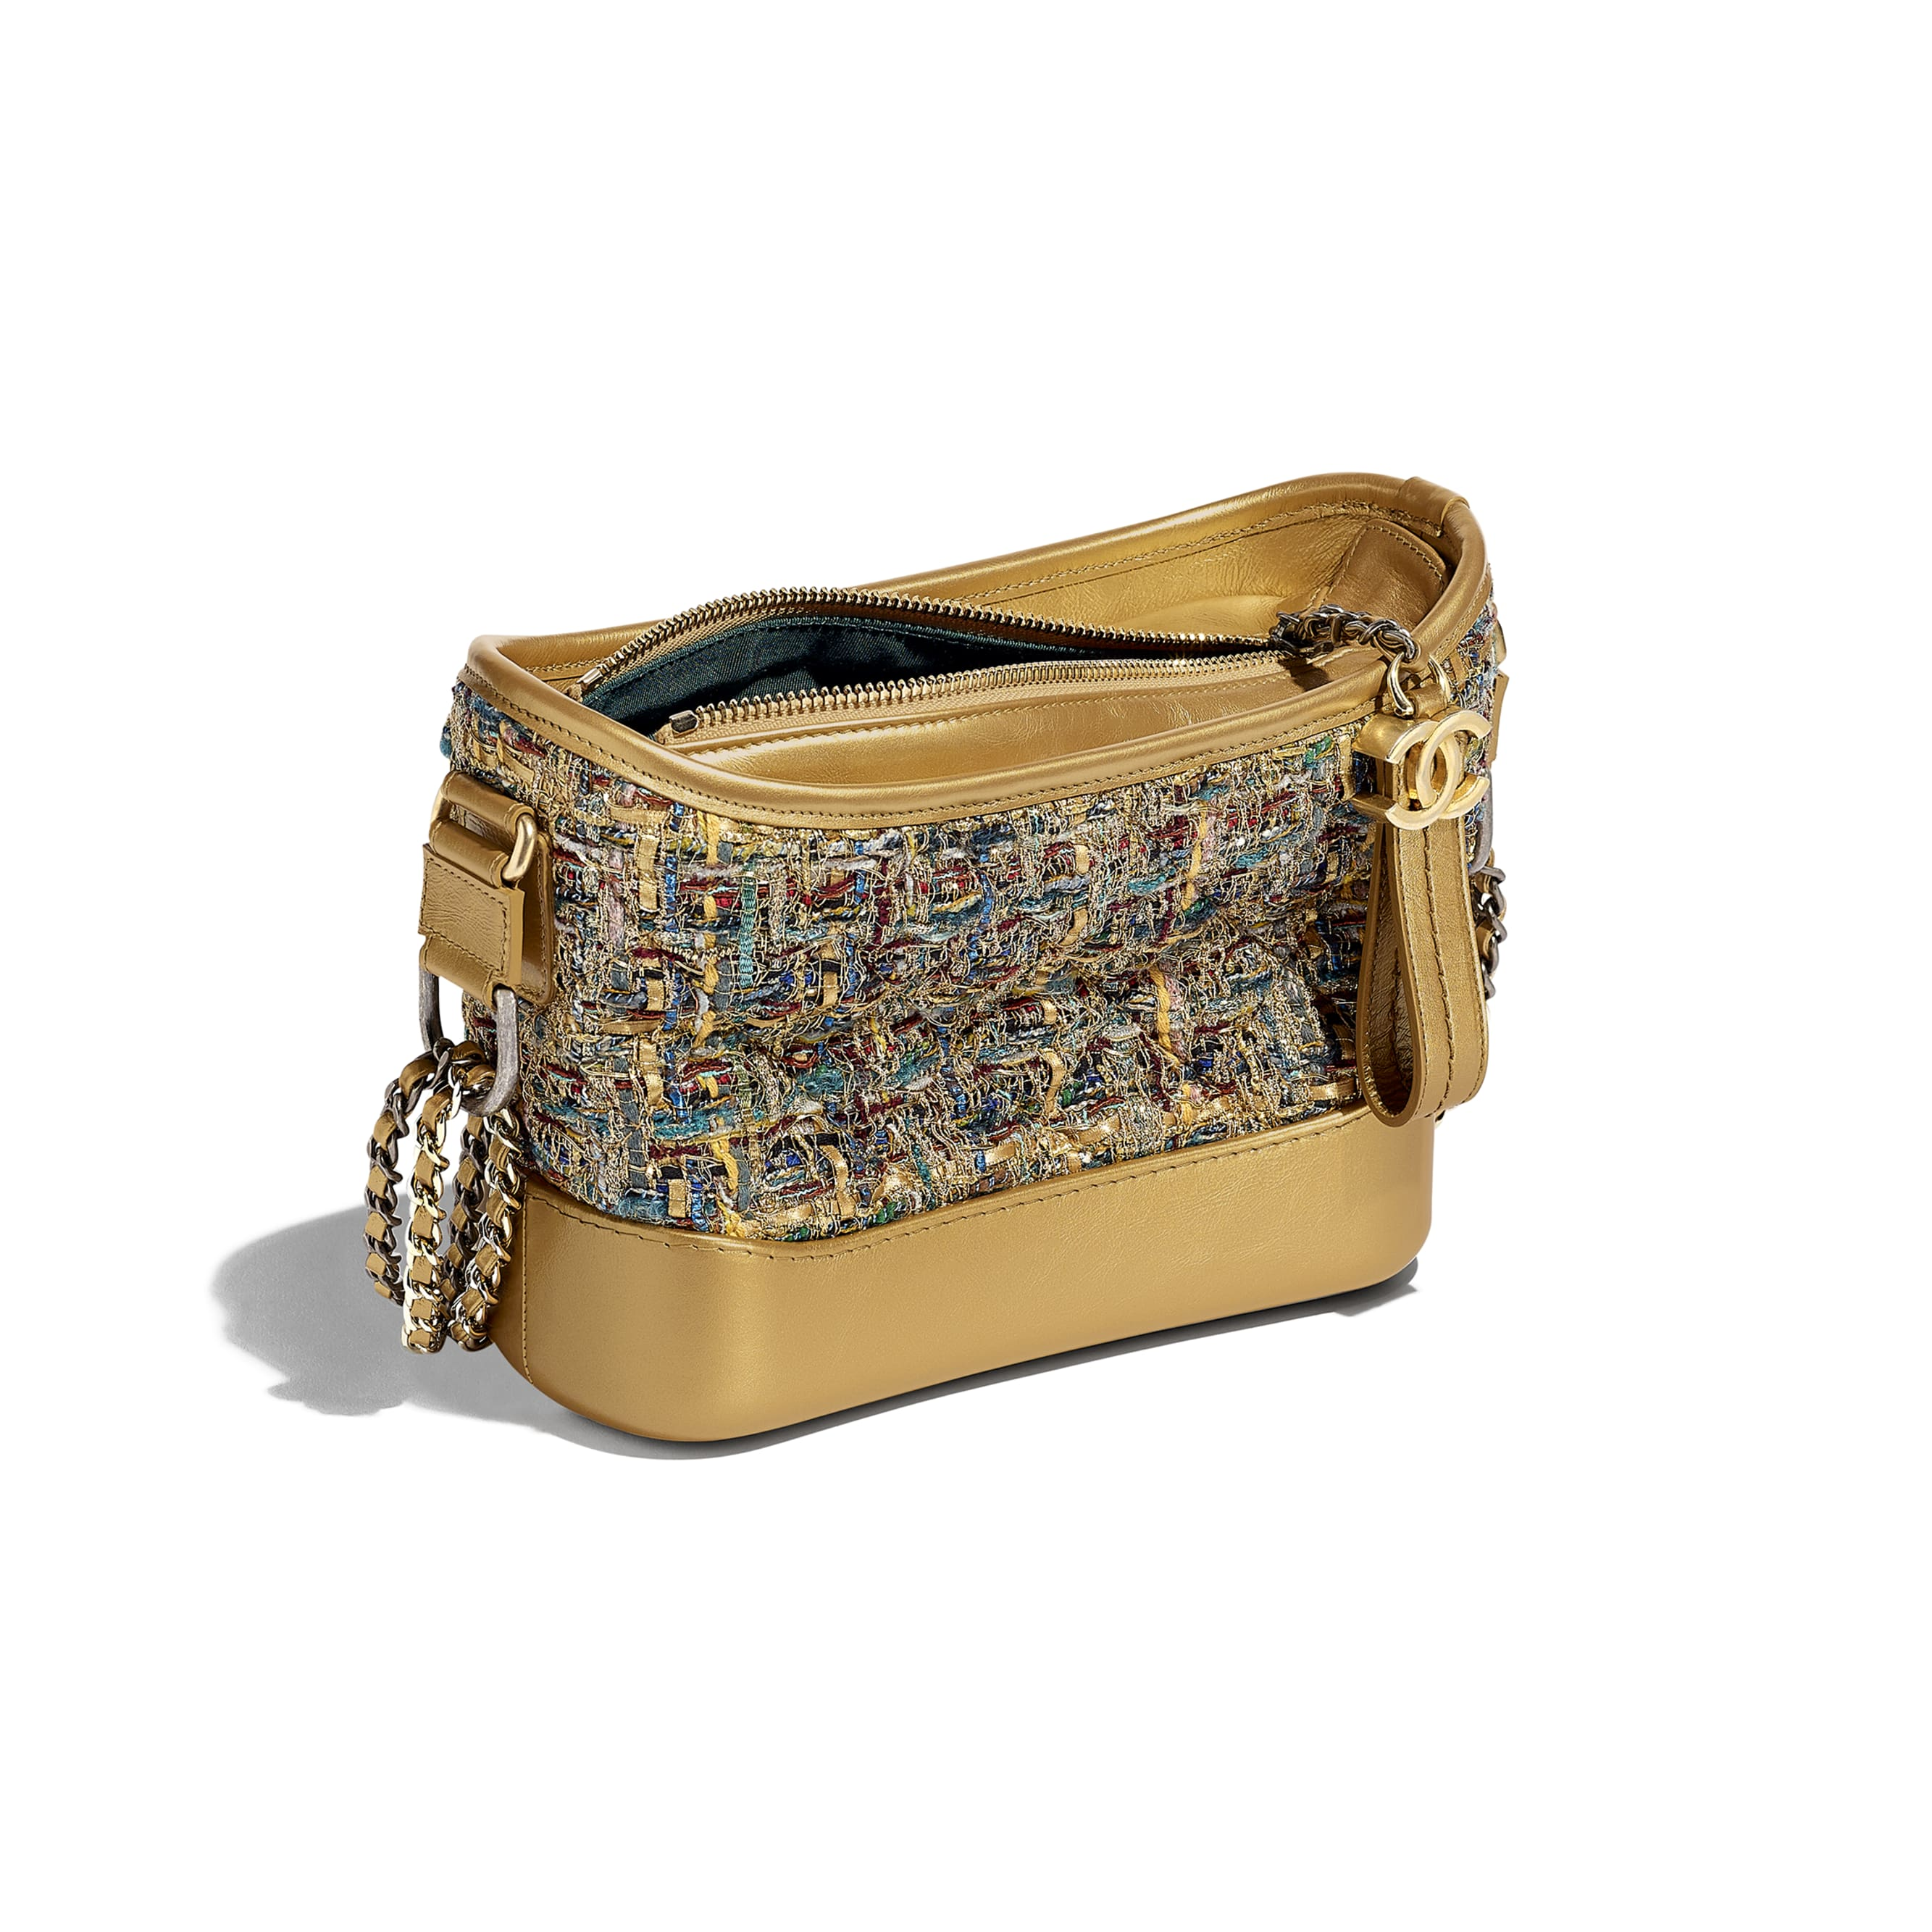 CHANEL'S GABRIELLE Small Hobo Bag - Gold, Blue & Green - Tweed, Calfskin, Gold-Tone & Silver-Tone Metal - Other view - see standard sized version